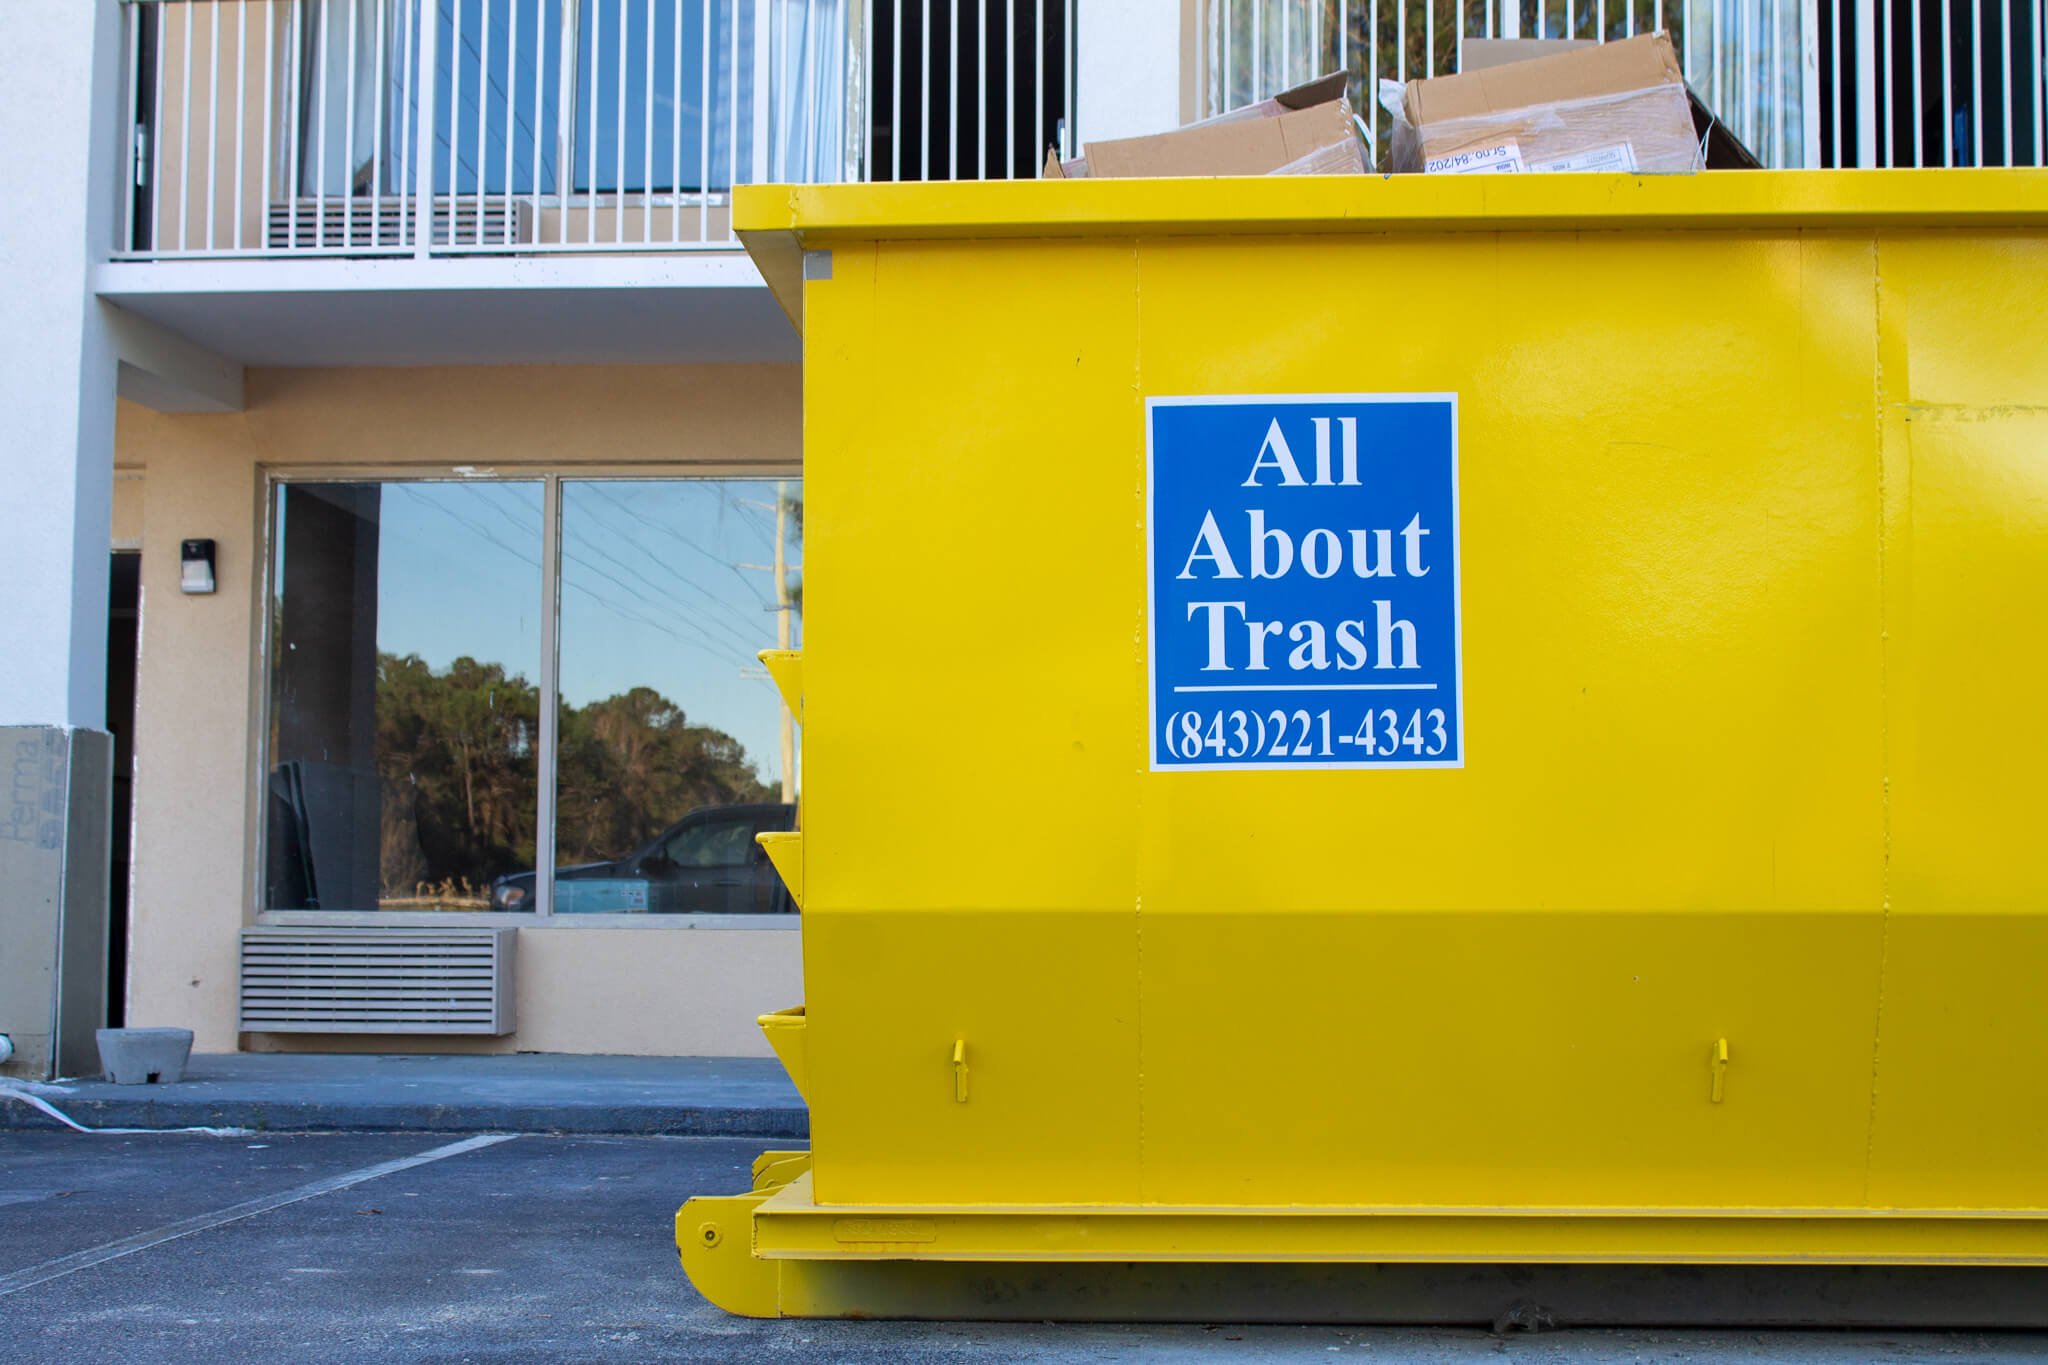 all about trash yellow 40-yard dumpster